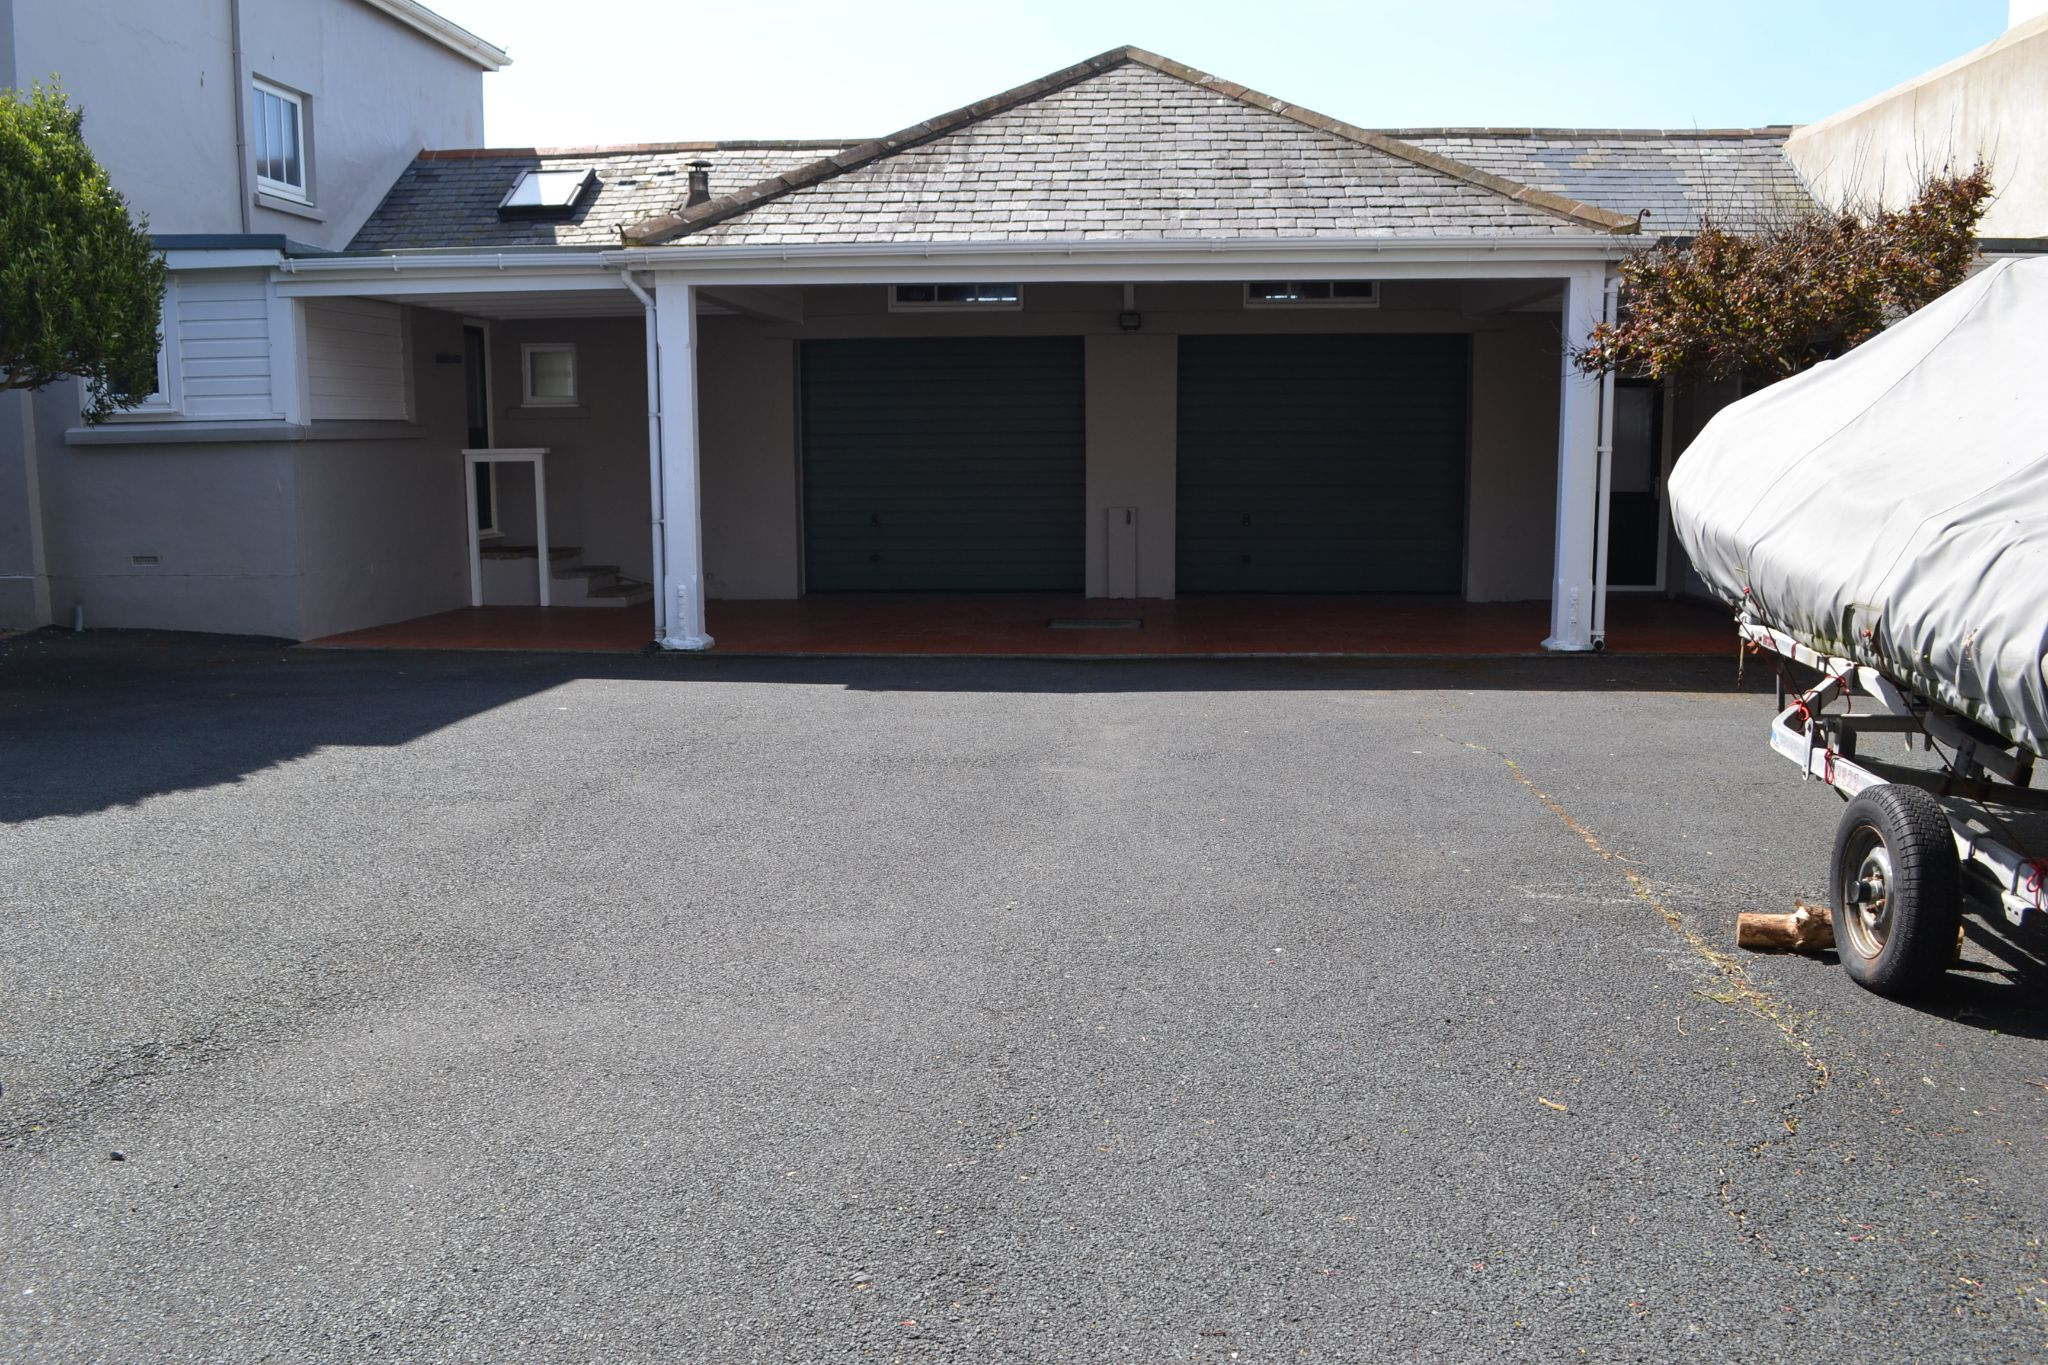 6 bedroom detached house For Sale in Castletown - Photograph 41